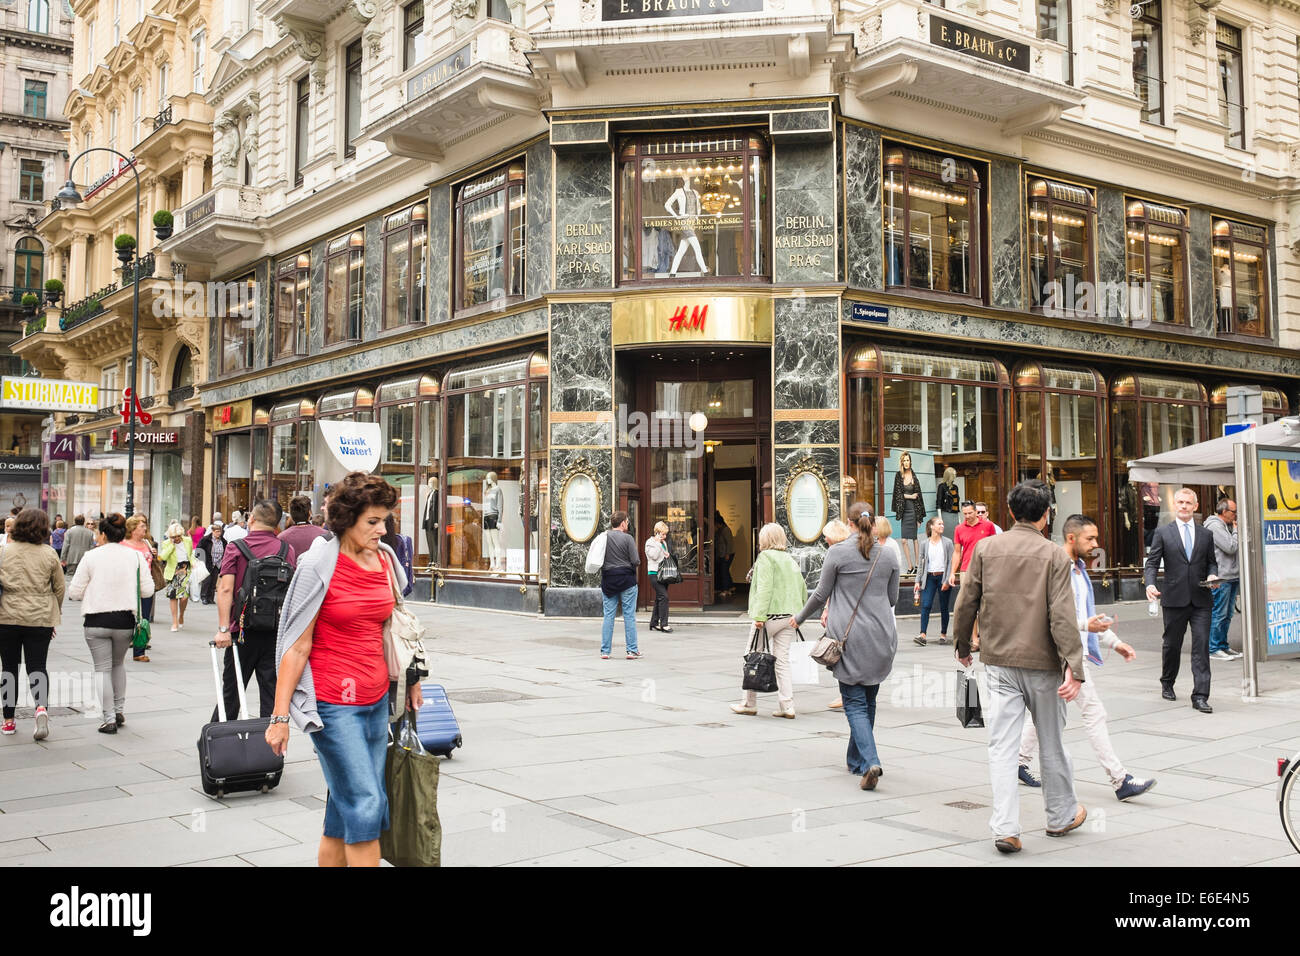 h m shop graben vienna europe stock photo royalty free image 72840465 alamy. Black Bedroom Furniture Sets. Home Design Ideas